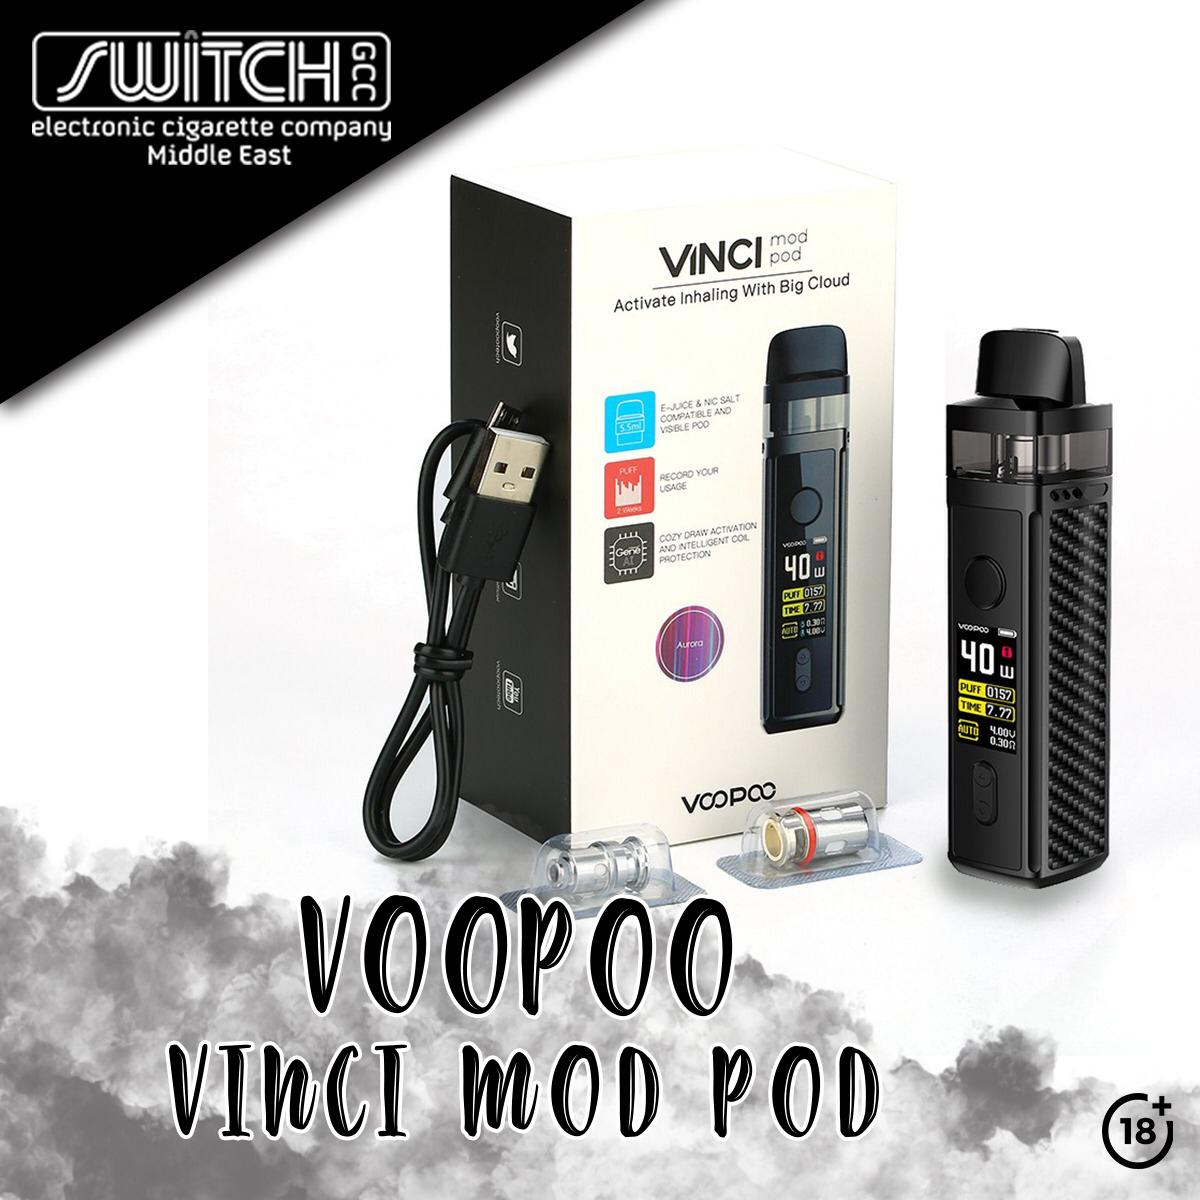 🔞🔞🔞🔞🔞 Voopoo Vinci Mod Pod Dial 32095389, FOR FURTHER INFORMATION Dial 36090836, TO PLACE YOUR ORDER. #Vape #eciggrate #bahrain #smoke #switch #vaping #Bahrainstore #Bahrainmarket #Bahrani #bahrainvape #Bahraineciggrate #Bahrainsmoke https://t.co/CviY67rGw7